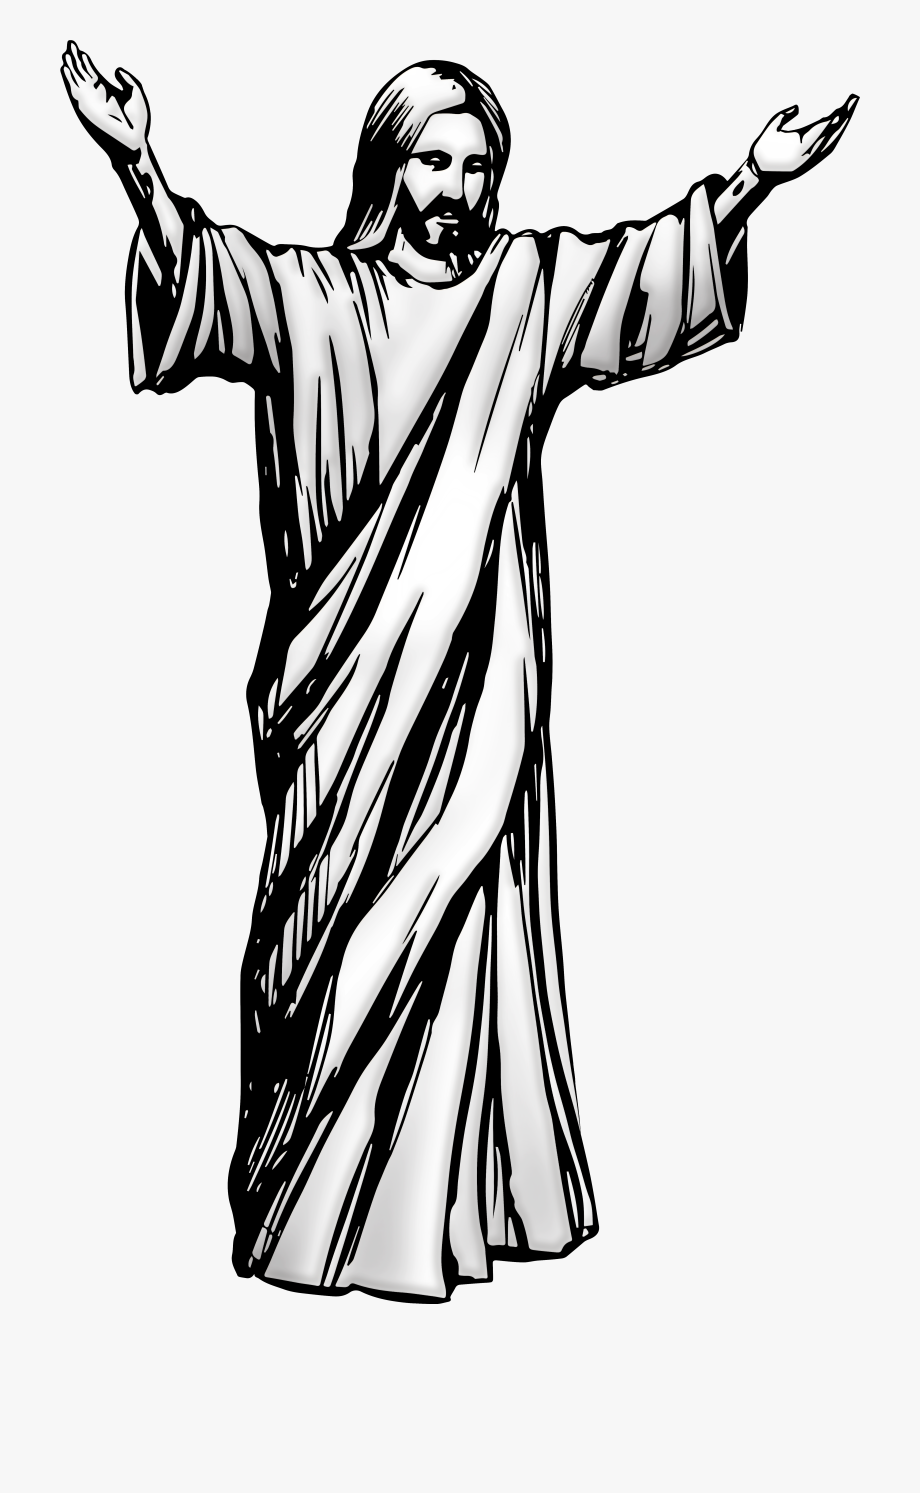 Christ png clip art. Free christian clipart black and white drawing jesus